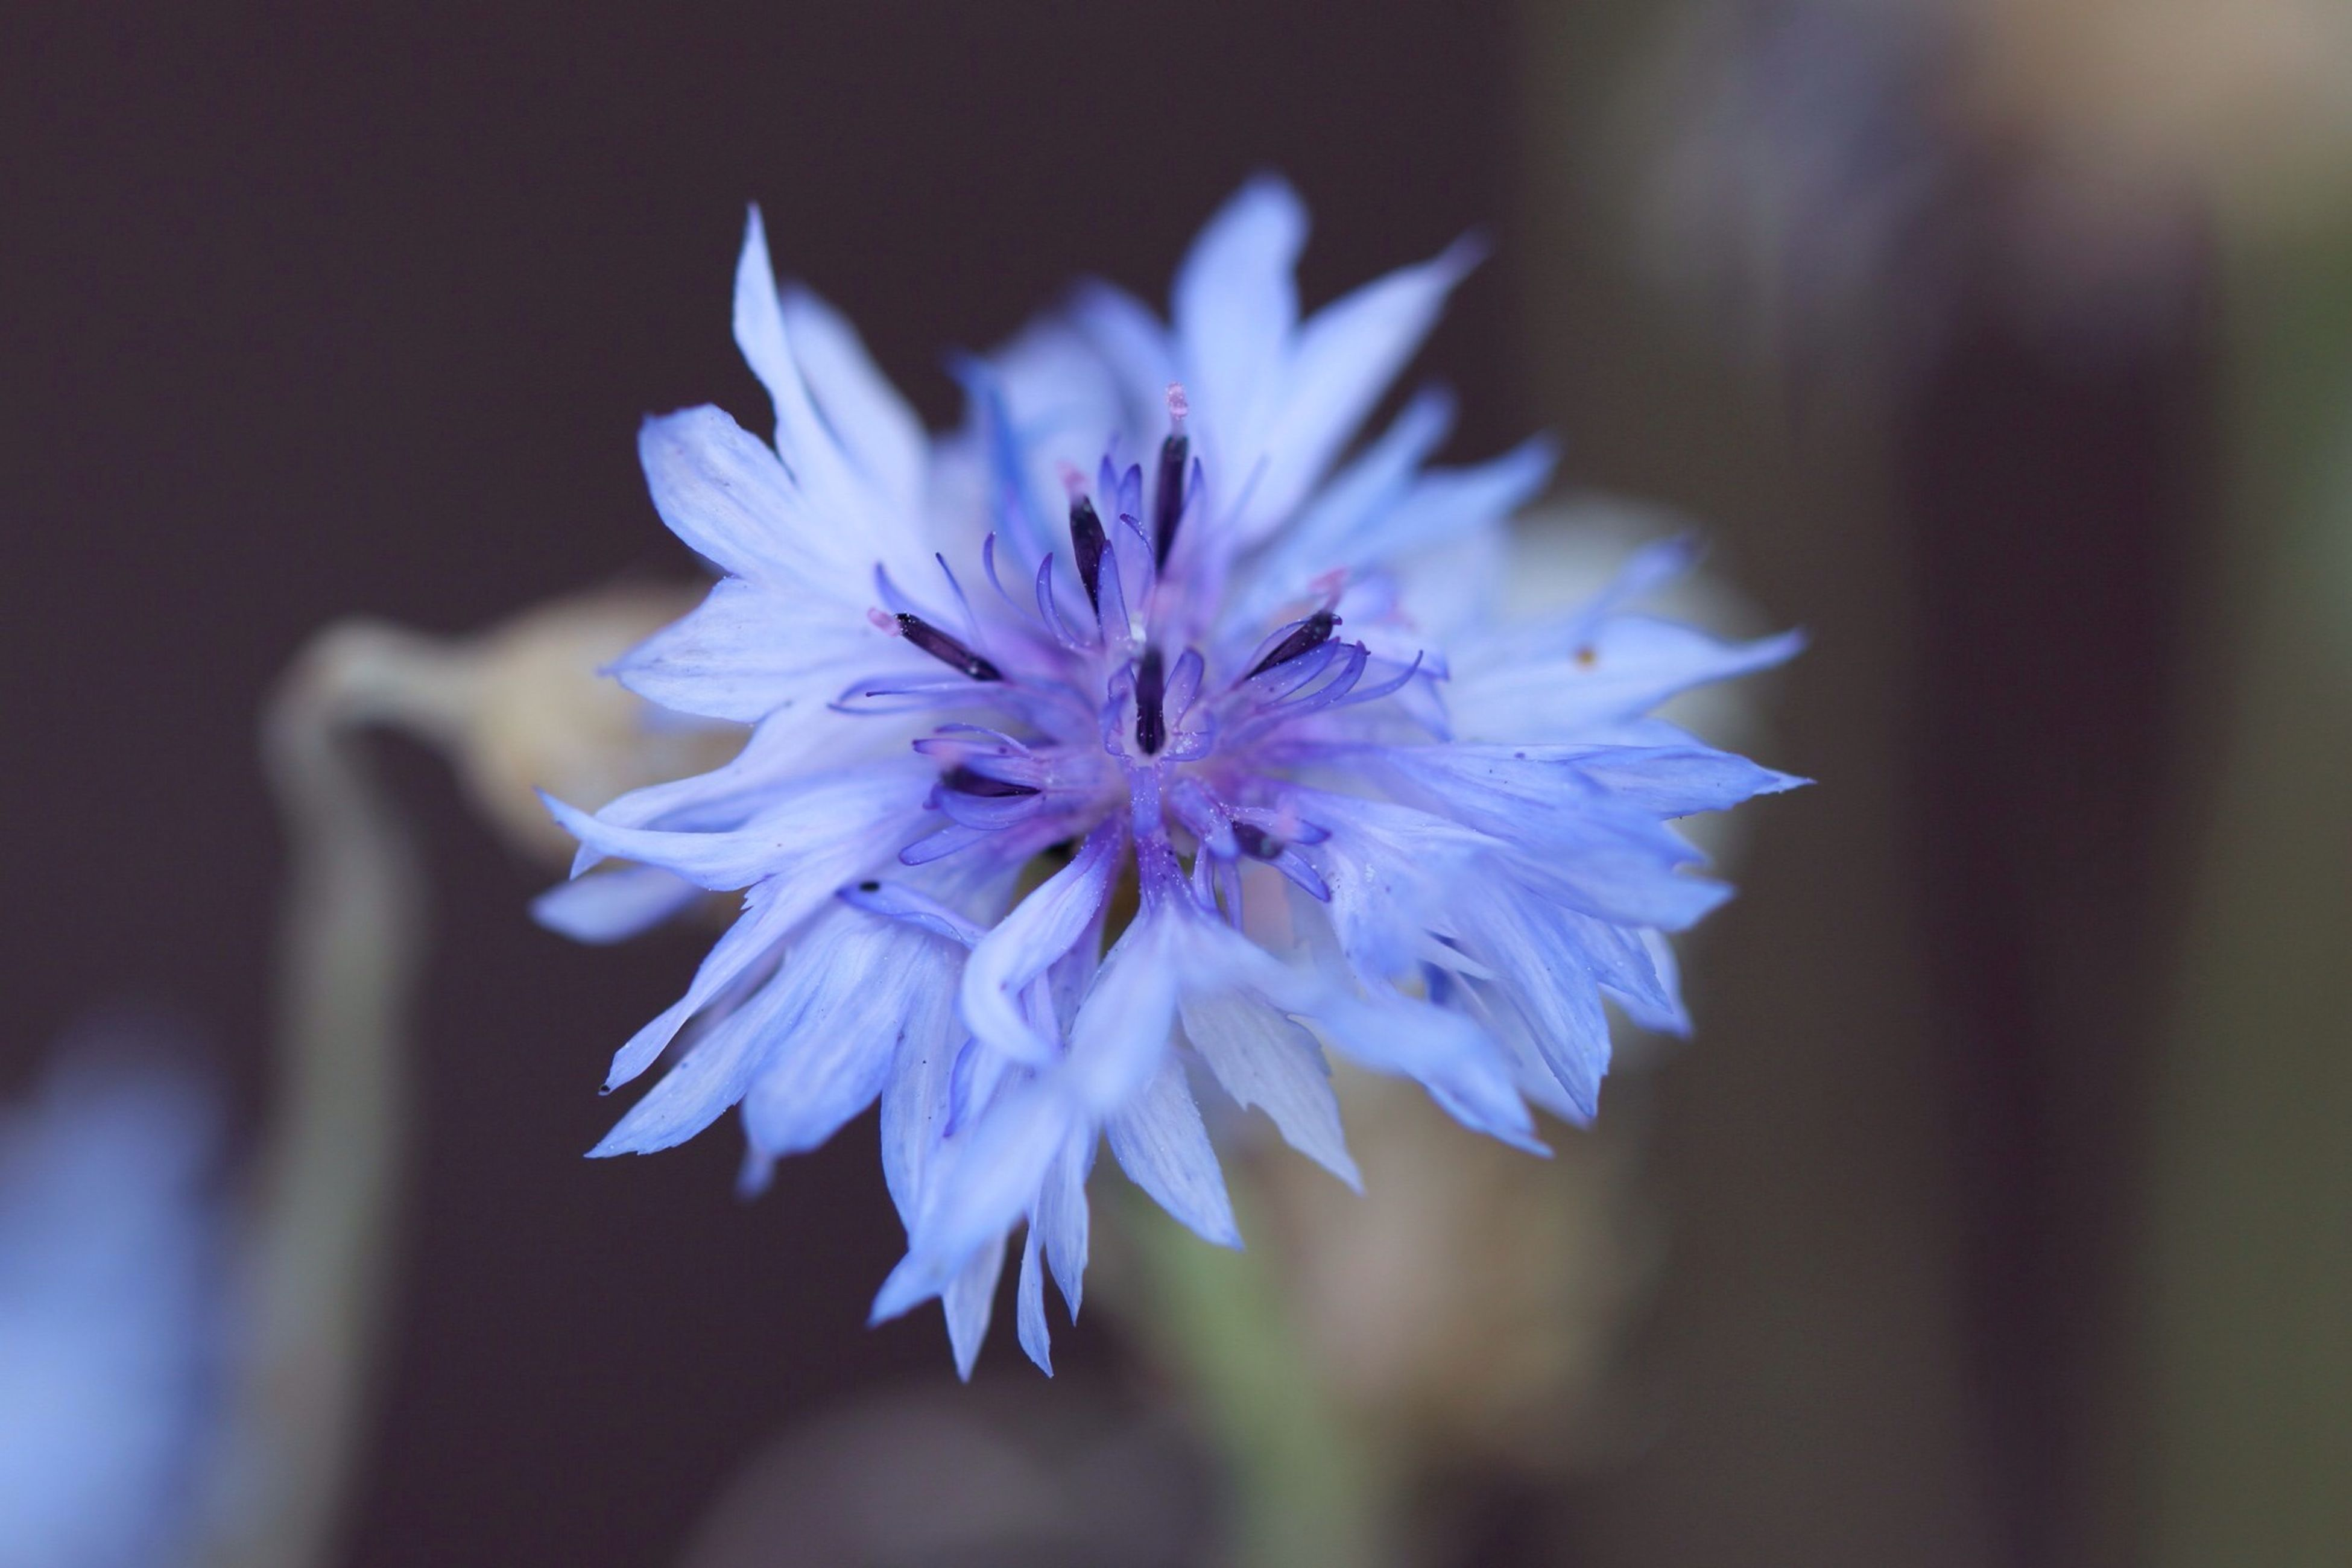 flower, petal, freshness, fragility, flower head, purple, close-up, focus on foreground, growth, beauty in nature, single flower, nature, blooming, selective focus, pollen, in bloom, plant, blossom, blue, stem